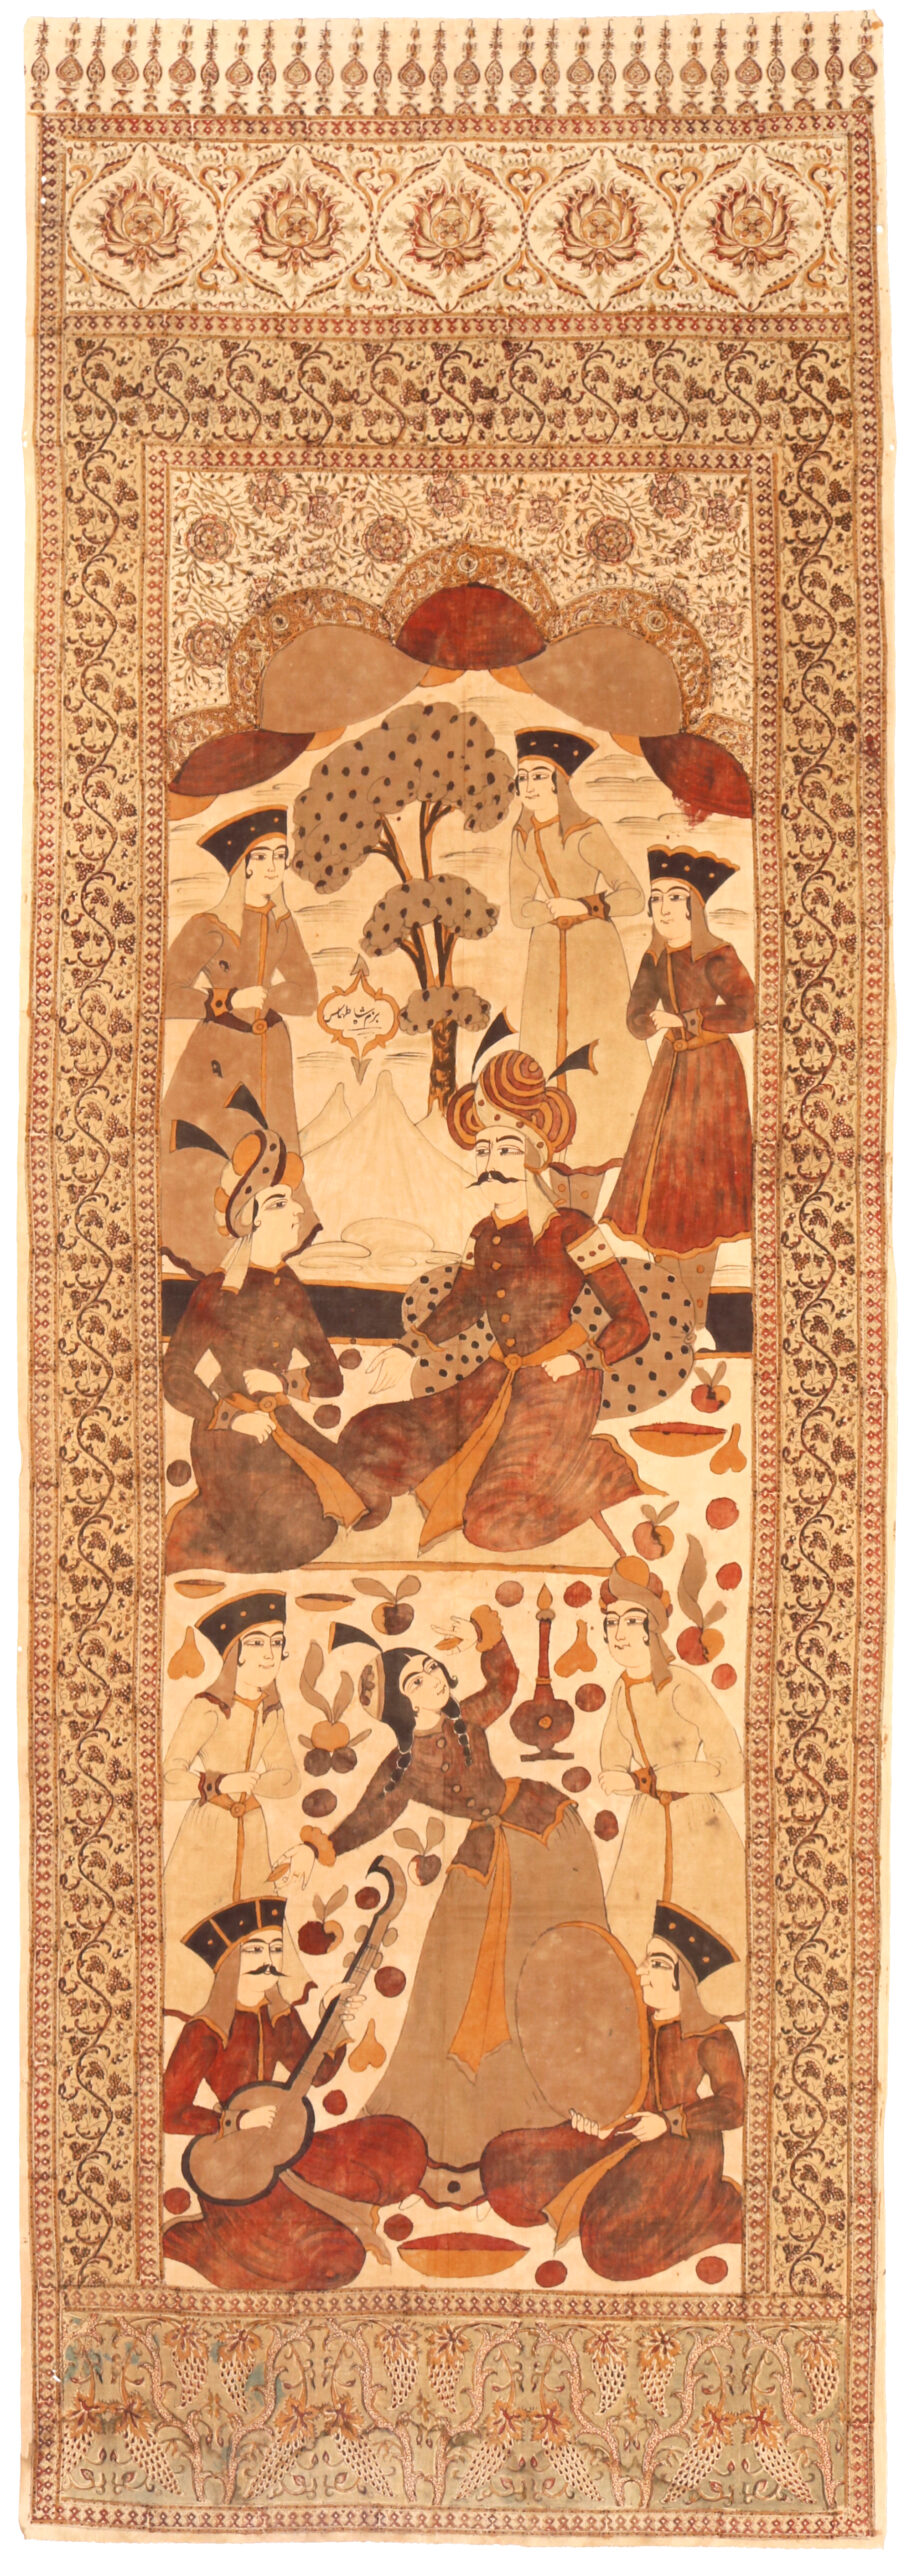 2 Qalamkar hanging, Esfahan, late 19th century. Cotton block-printed and painted with a scene of Shah Tahmasp I receiving the Mughal Emperor Humayun in 1540